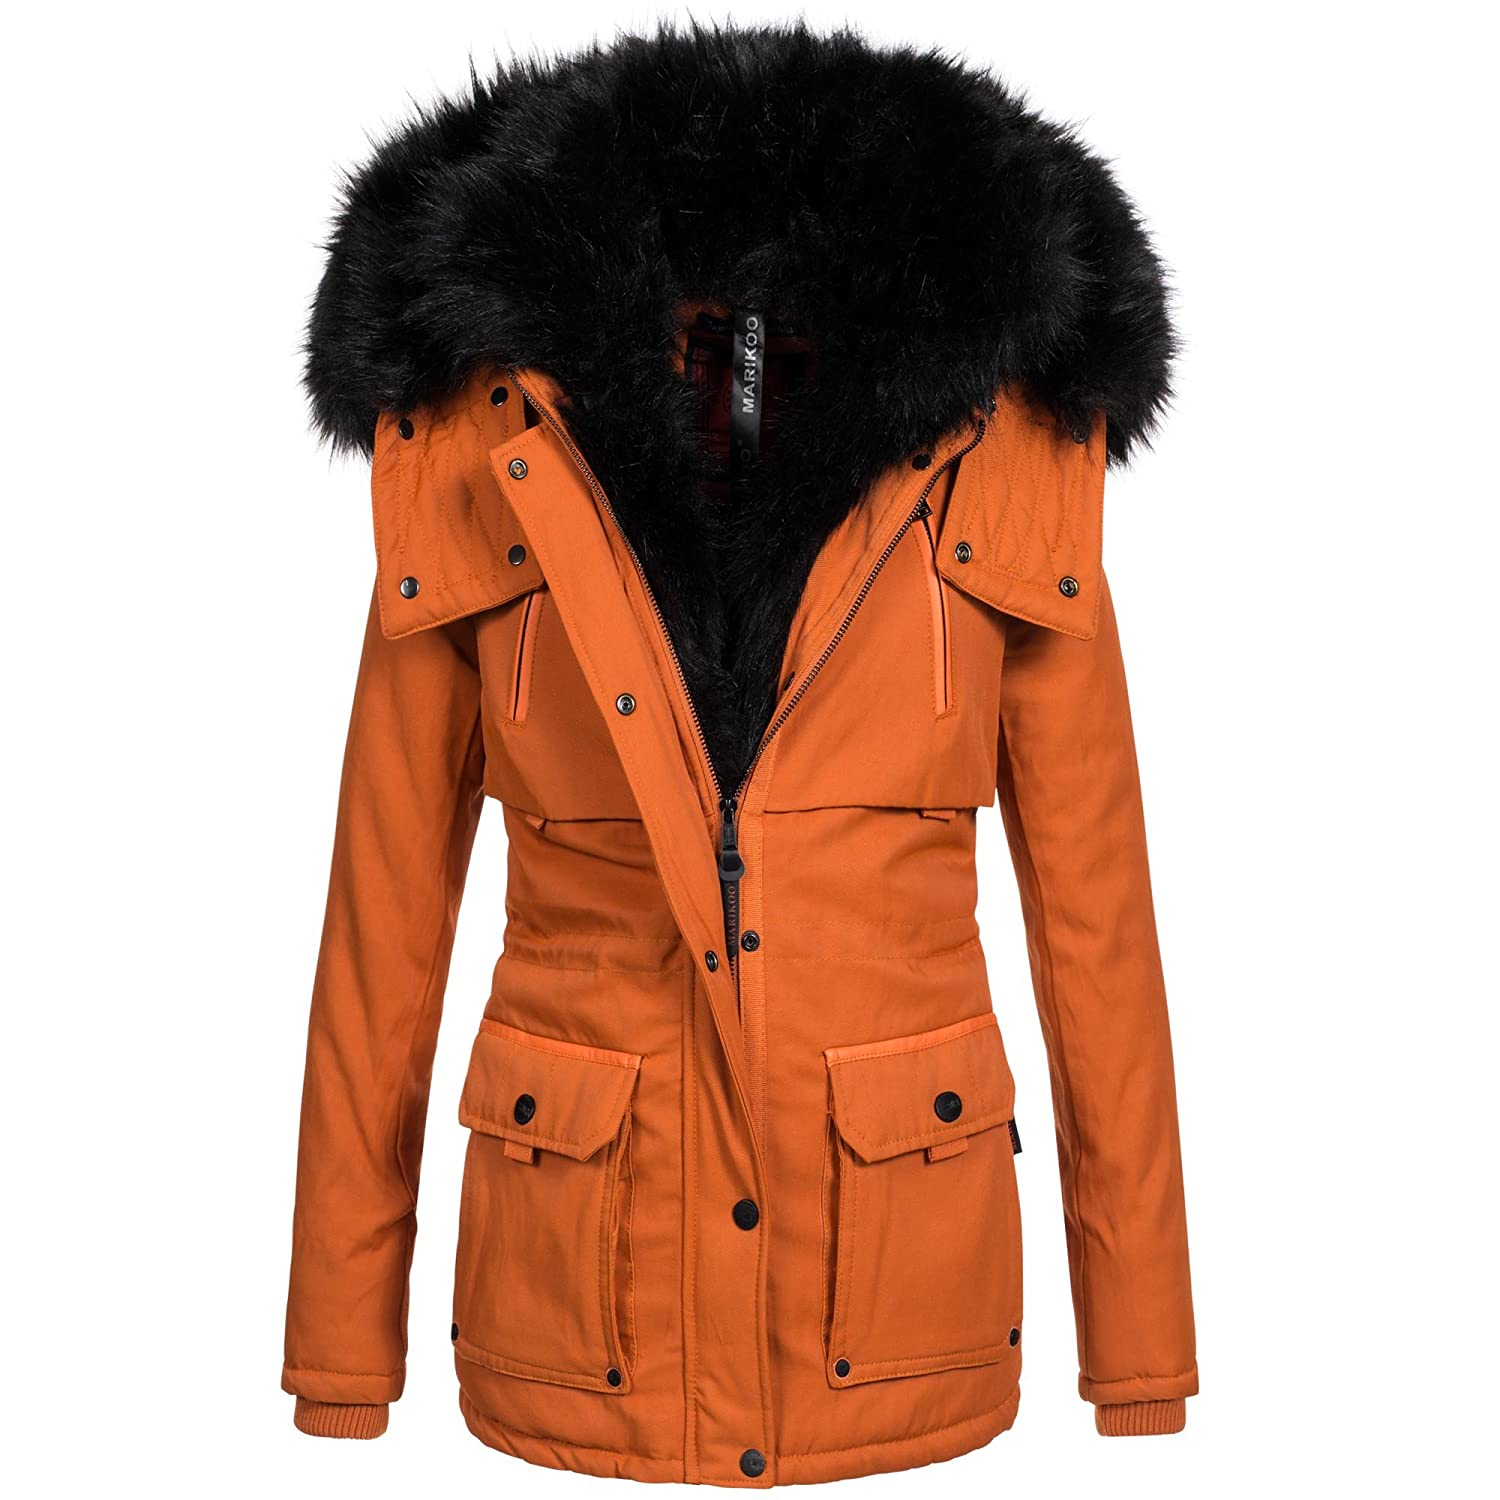 Damen jacke winter orange